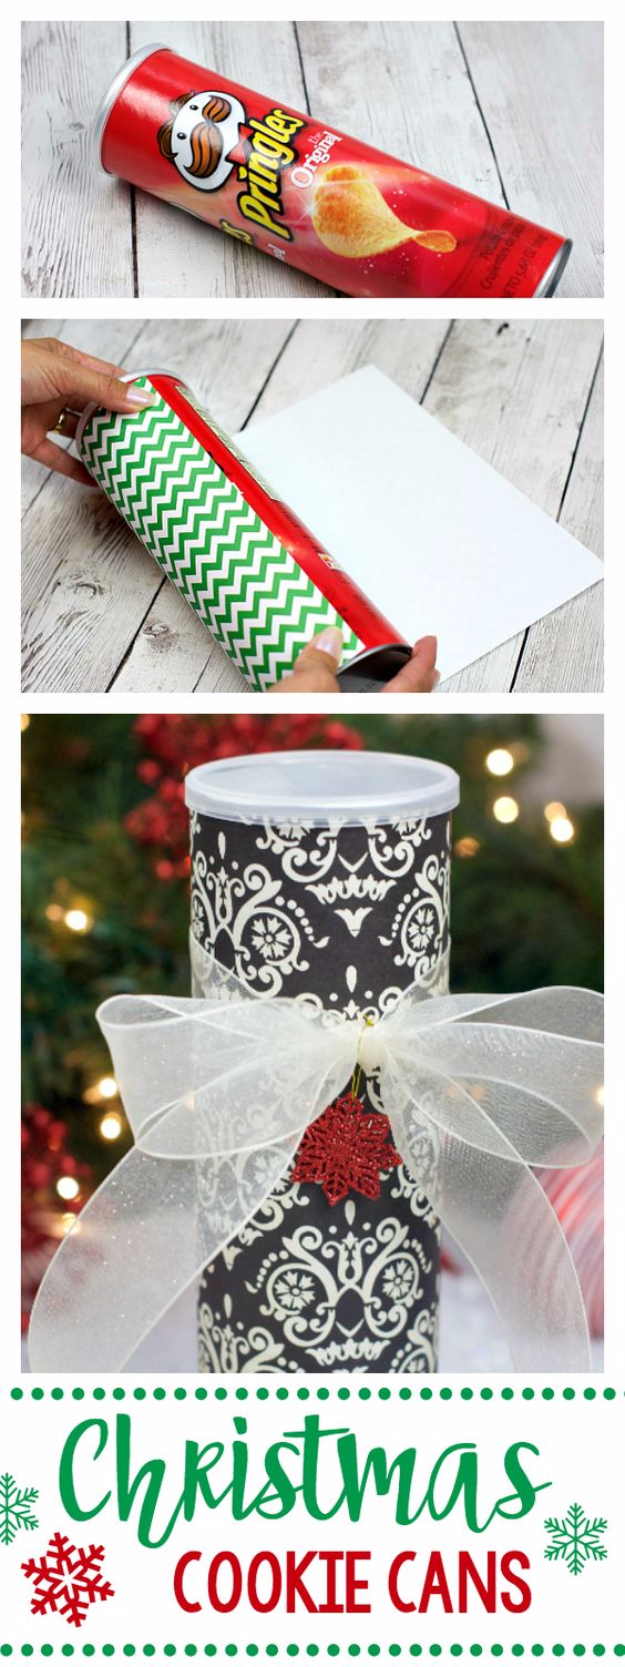 Best DIY Ideas for Wintertime - Christmas Cookie Cans - Winter Crafts with Snowflakes, Icicle Art and Projects, Wreaths, Woodland and Winter Wonderland Decor, Mason Jars and Dollar Store Ideas - Easy DIY Ideas to Decorate Home and Room for Winter - Creative Home Decor and Room Decorations for Adults, Teens and Kids #diy #winter #crafts